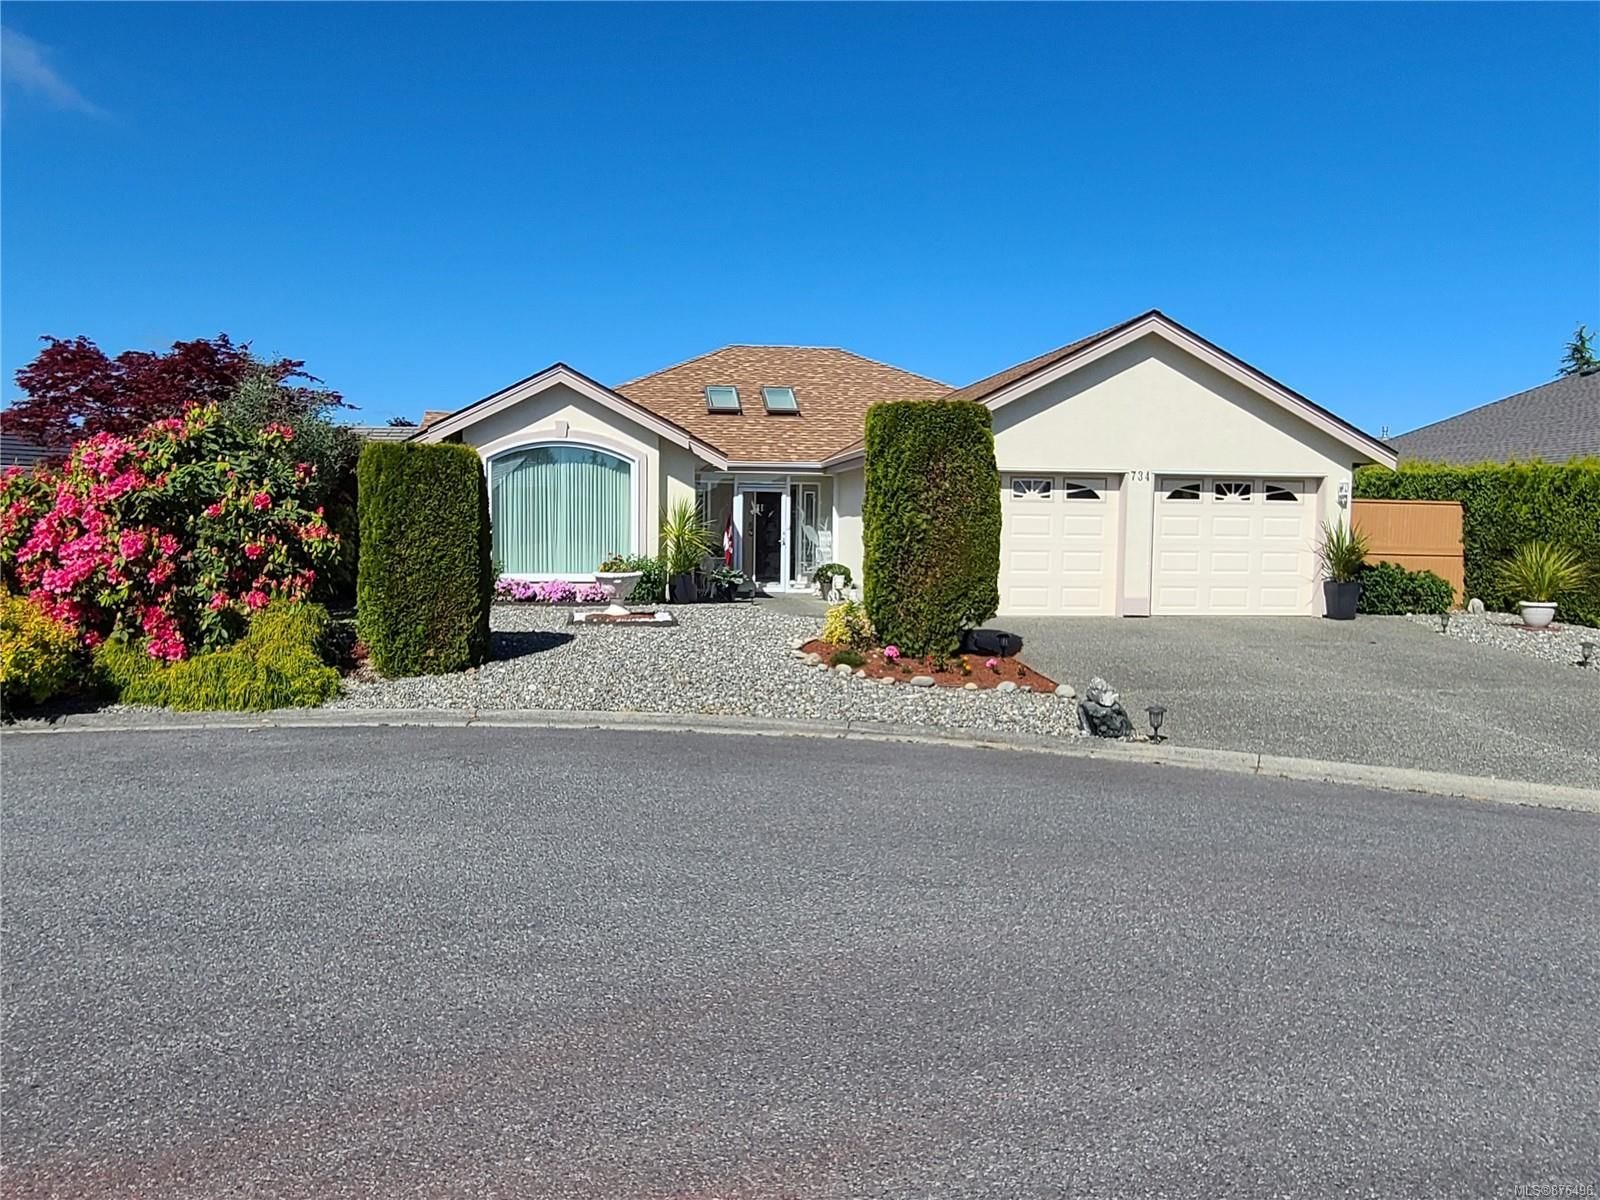 Main Photo: 734 Banwell Crt in : PQ Qualicum Beach House for sale (Parksville/Qualicum)  : MLS®# 876496